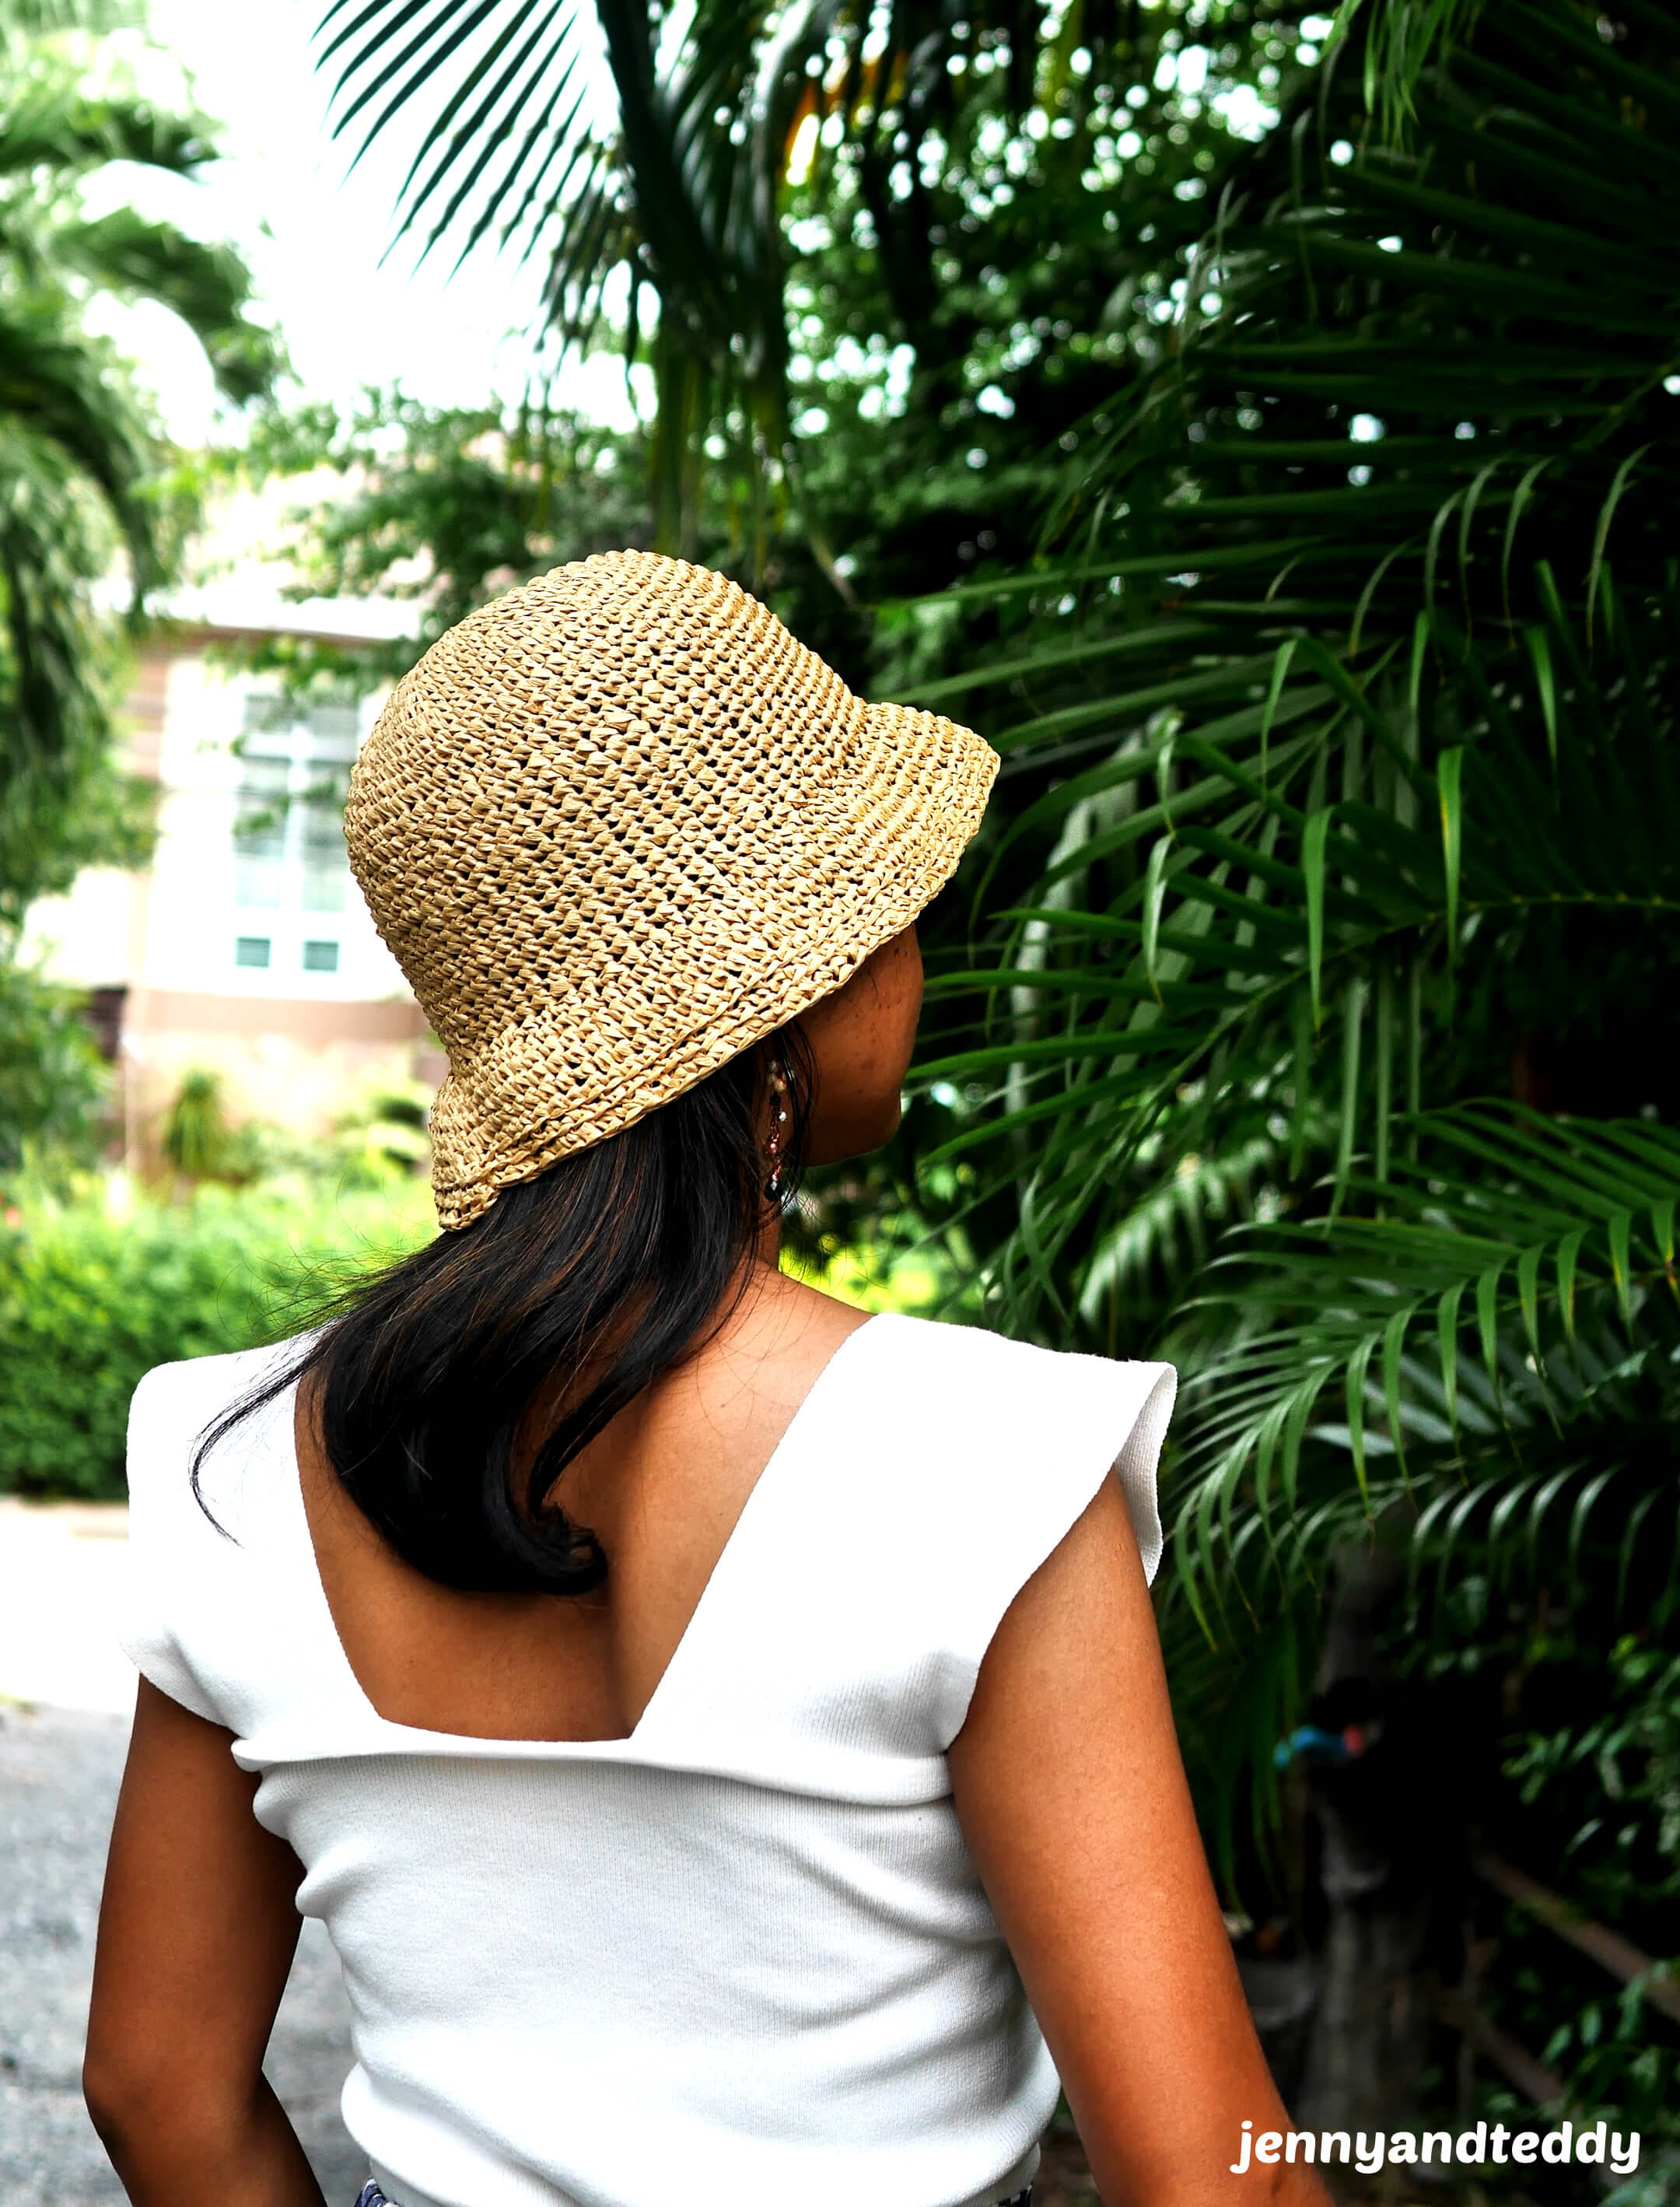 crochet sun hat with bucket style free how to crochet video tutorial